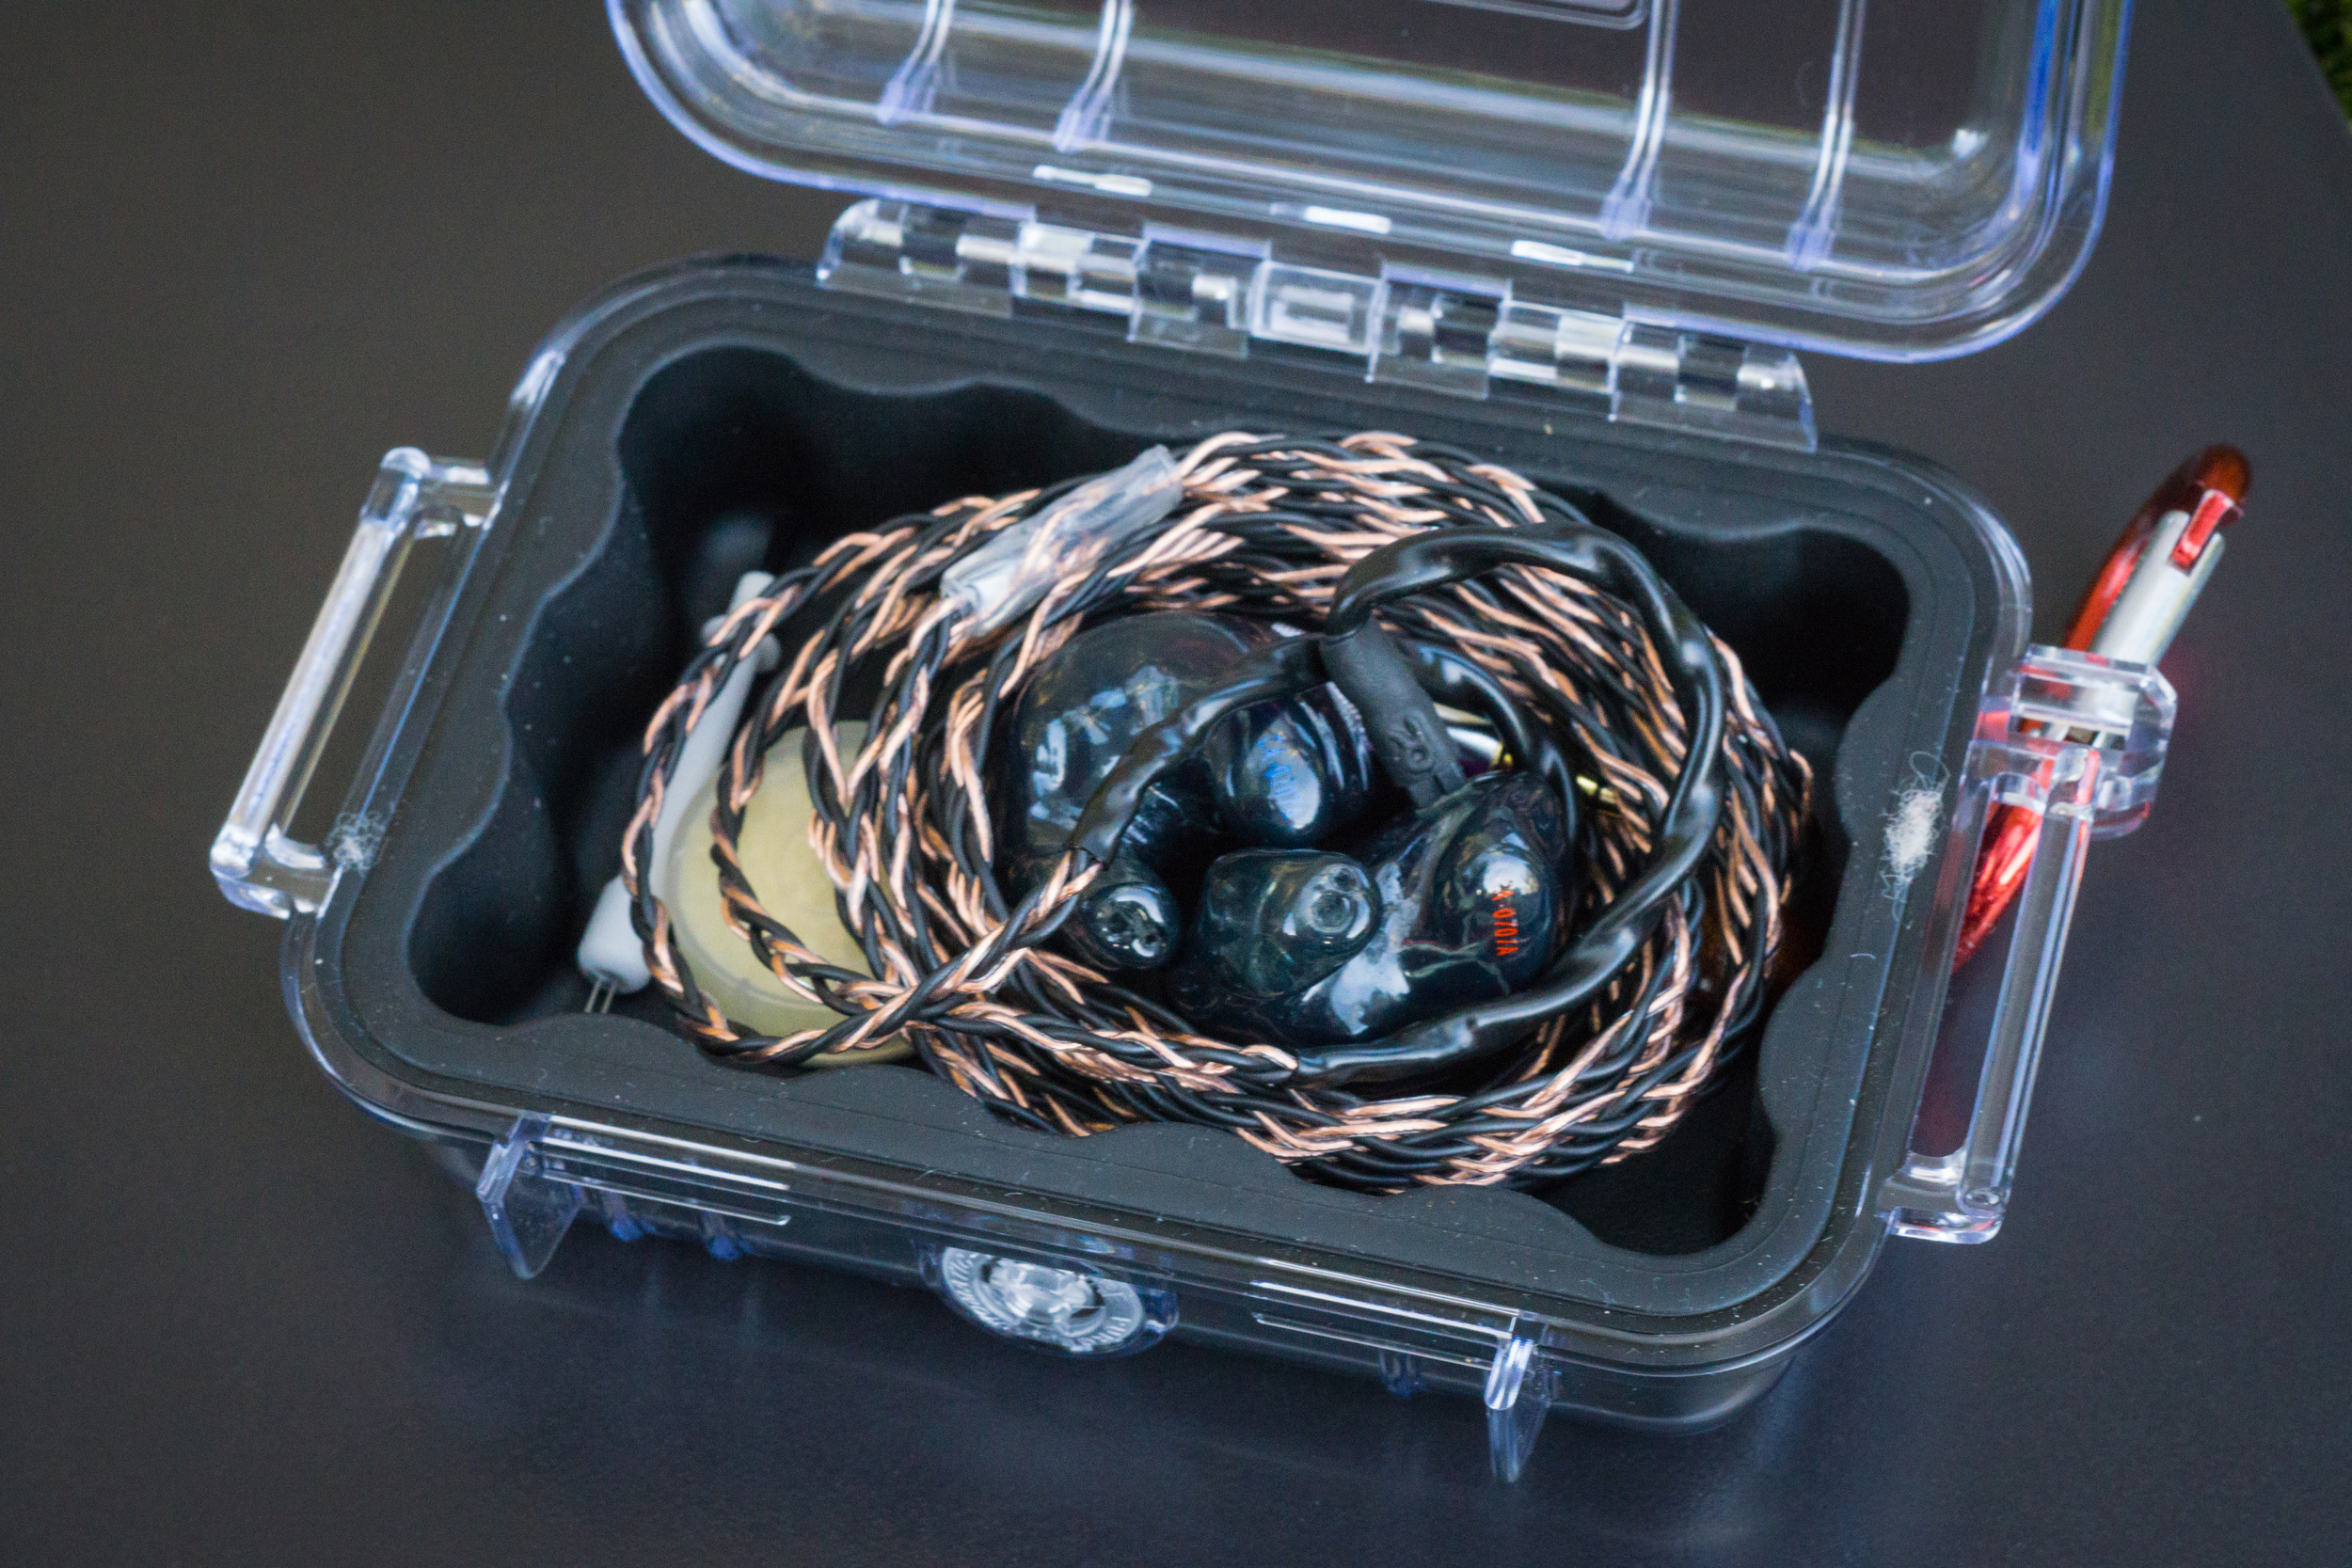 The Custom Art Ei.3 CIEM box is the excellent Pelican case 1010.  The best earphone case you can get.